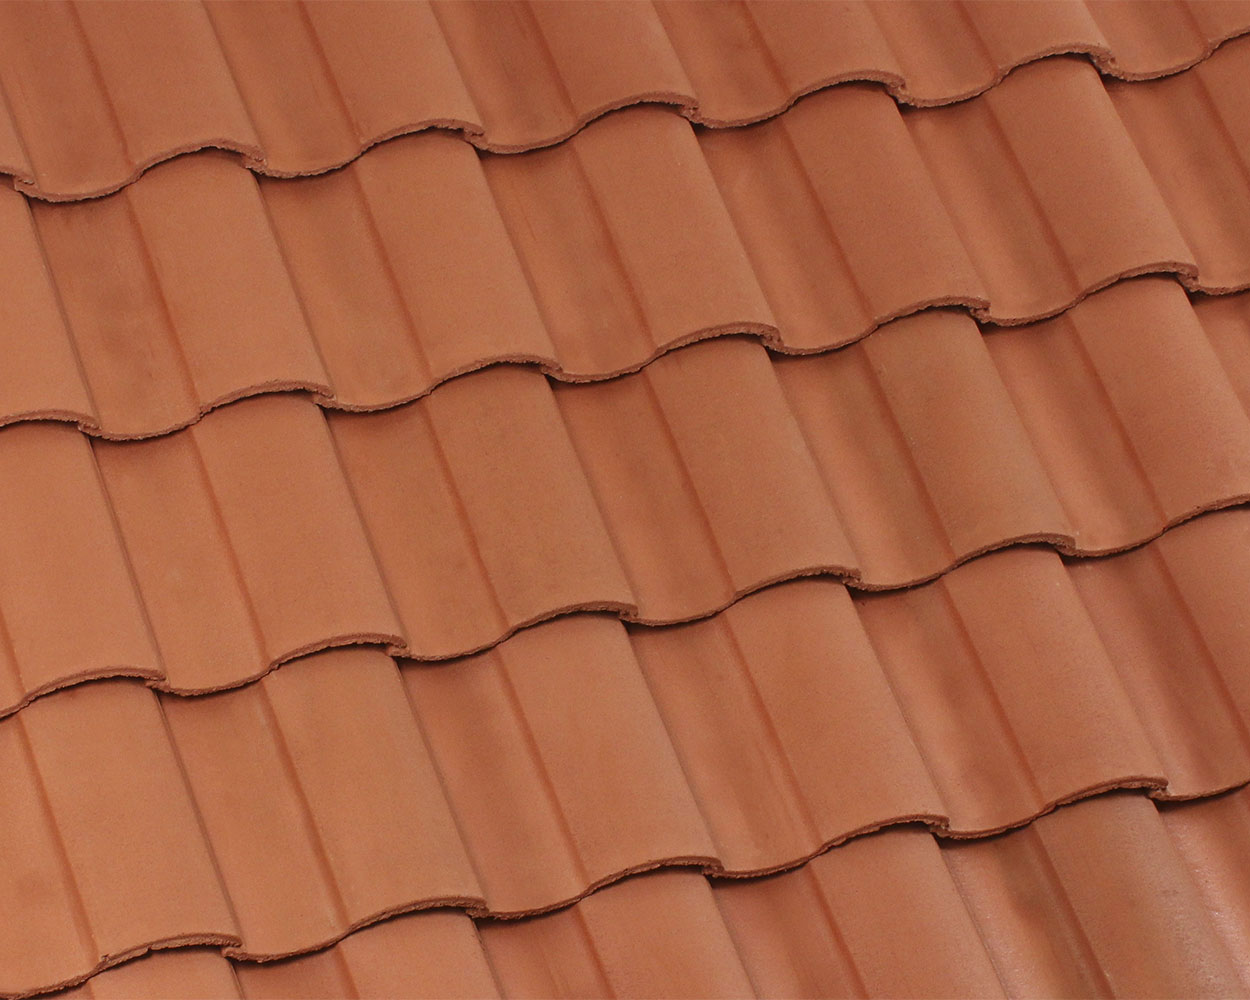 Seville range tile roof color swatch